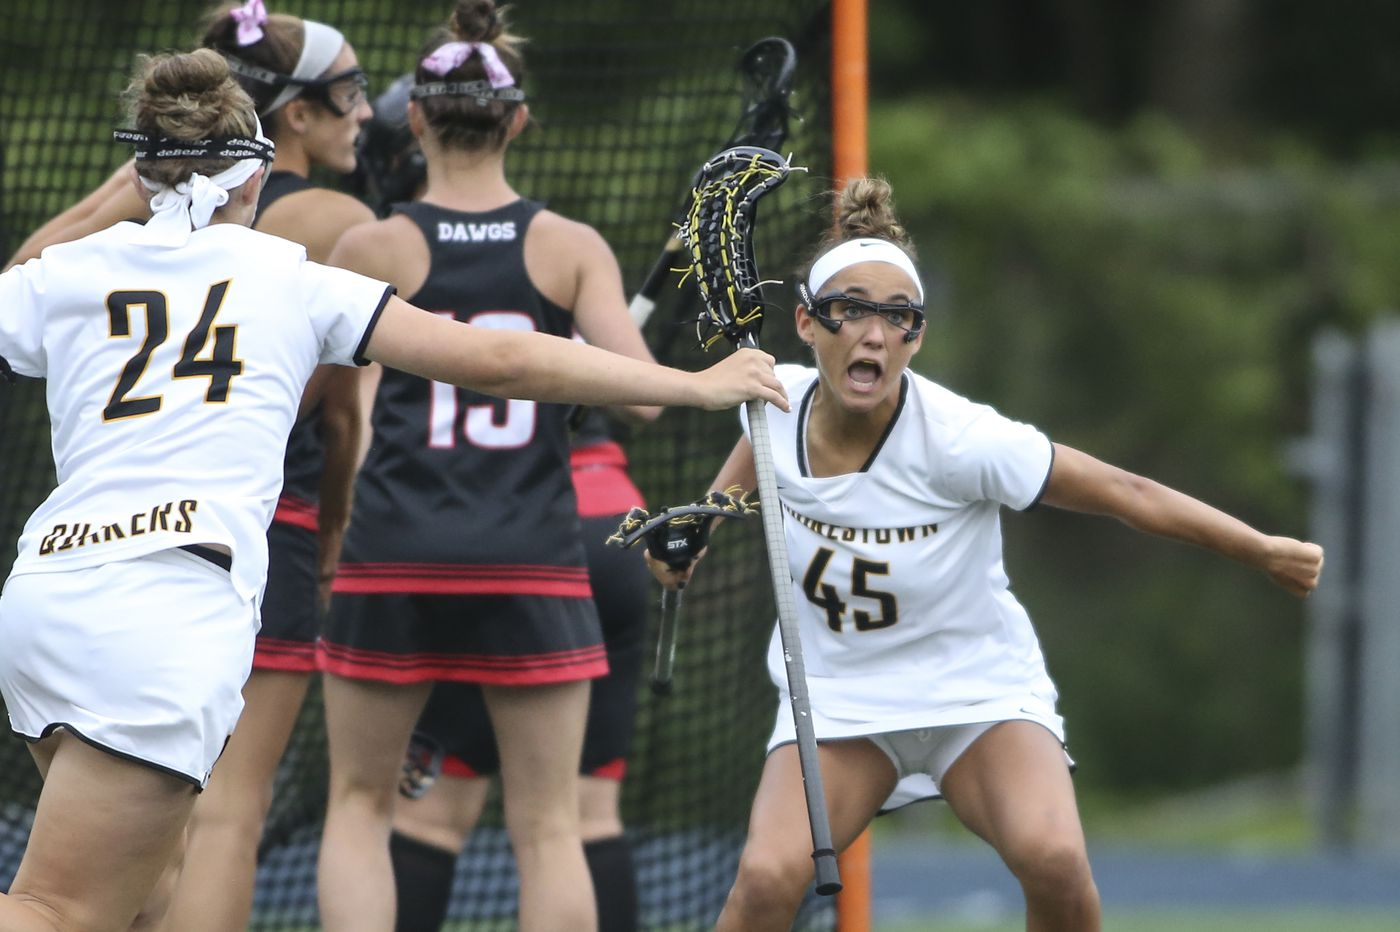 Moorestown wins Tournament of Champions girls' lacrosse semifinal against Haddonfield